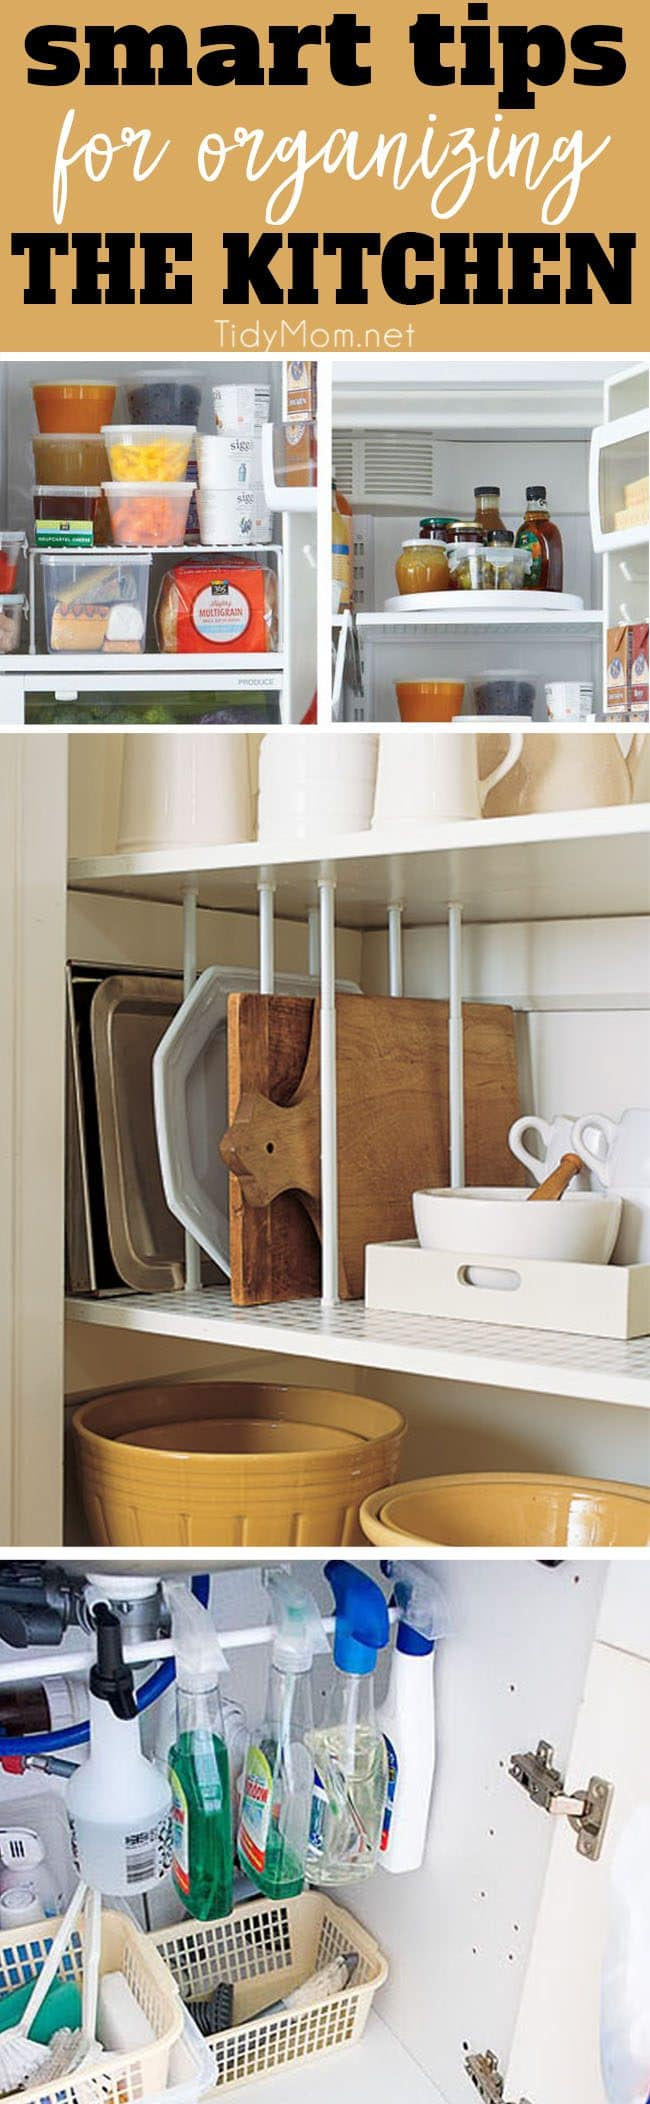 Pinterest Image What Makes A Great Kitchen Is How You Organize It. Learn 8  Smart Organizing Tips